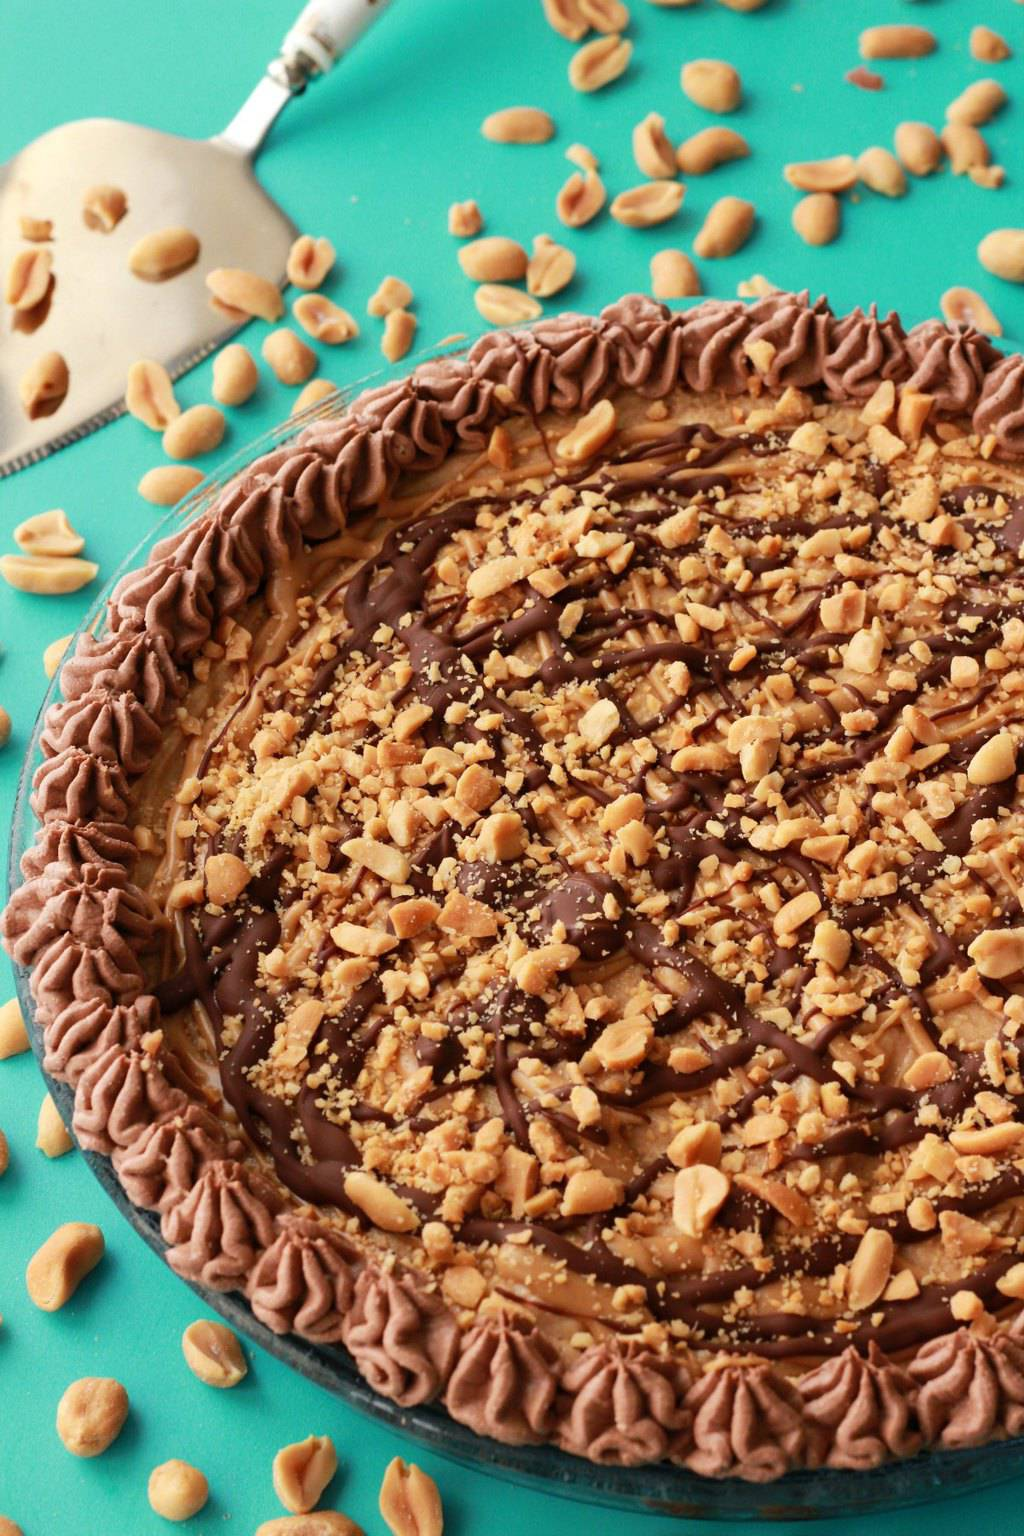 Vegan peanut butter pie topped with melted peanut butter and chocolate and crushed peanuts in a glass pie dish.